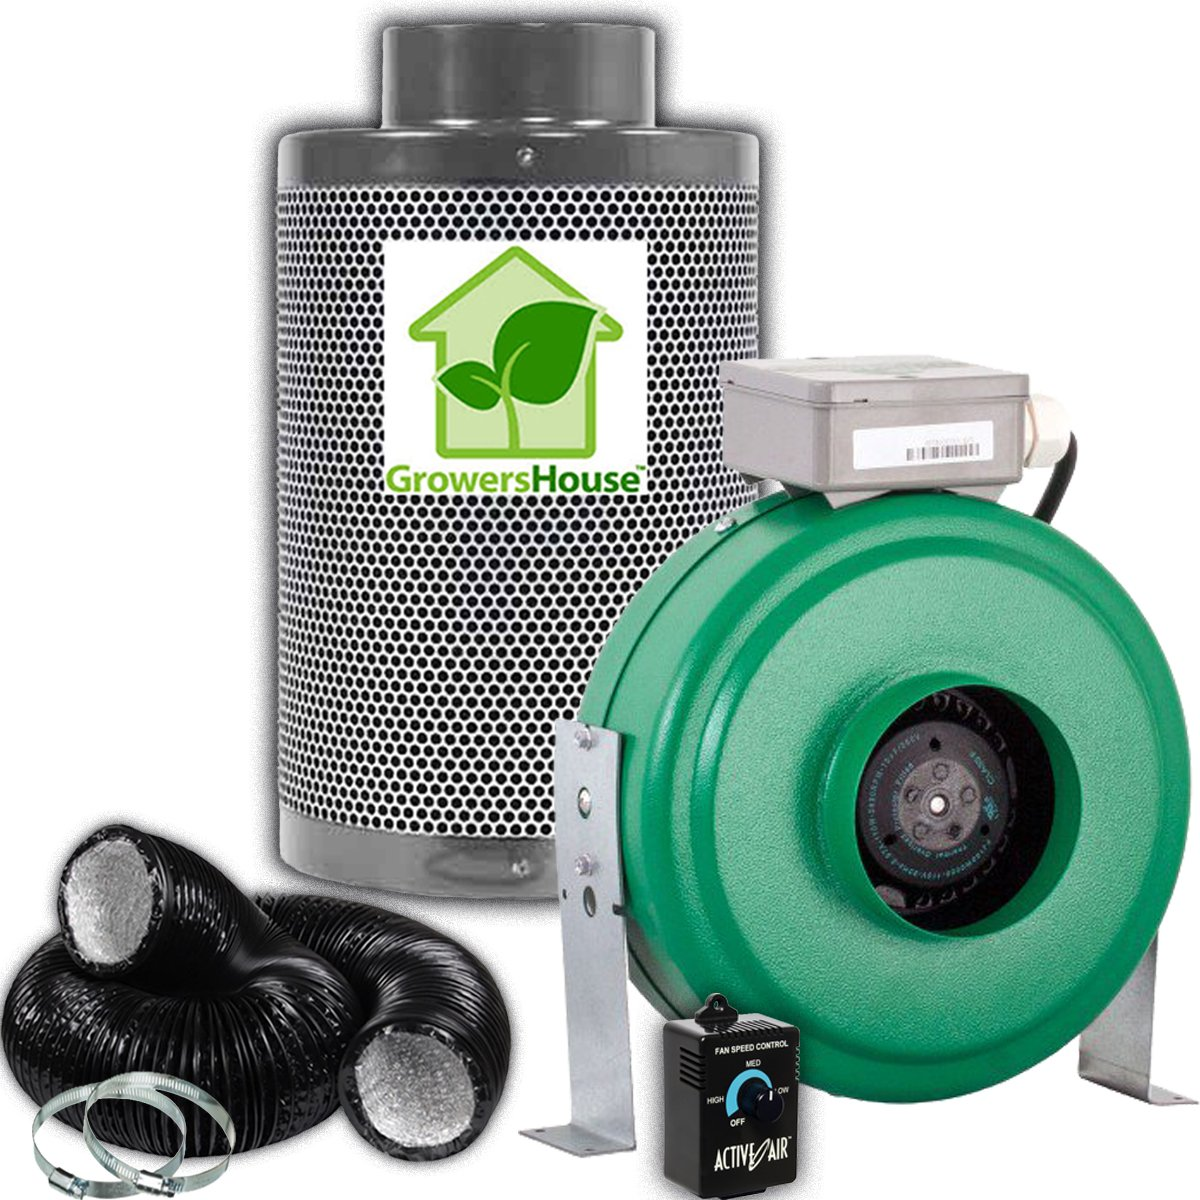 Growers House 4'' Carbon Filter, 2 Pre-Filters, and Active Air 4 inch 165 CFM Duct Inline Fan | FREE 25 Feet Lightproof Ducting and Active Air Controller Combo for Quiet Grow Tent Ventilation